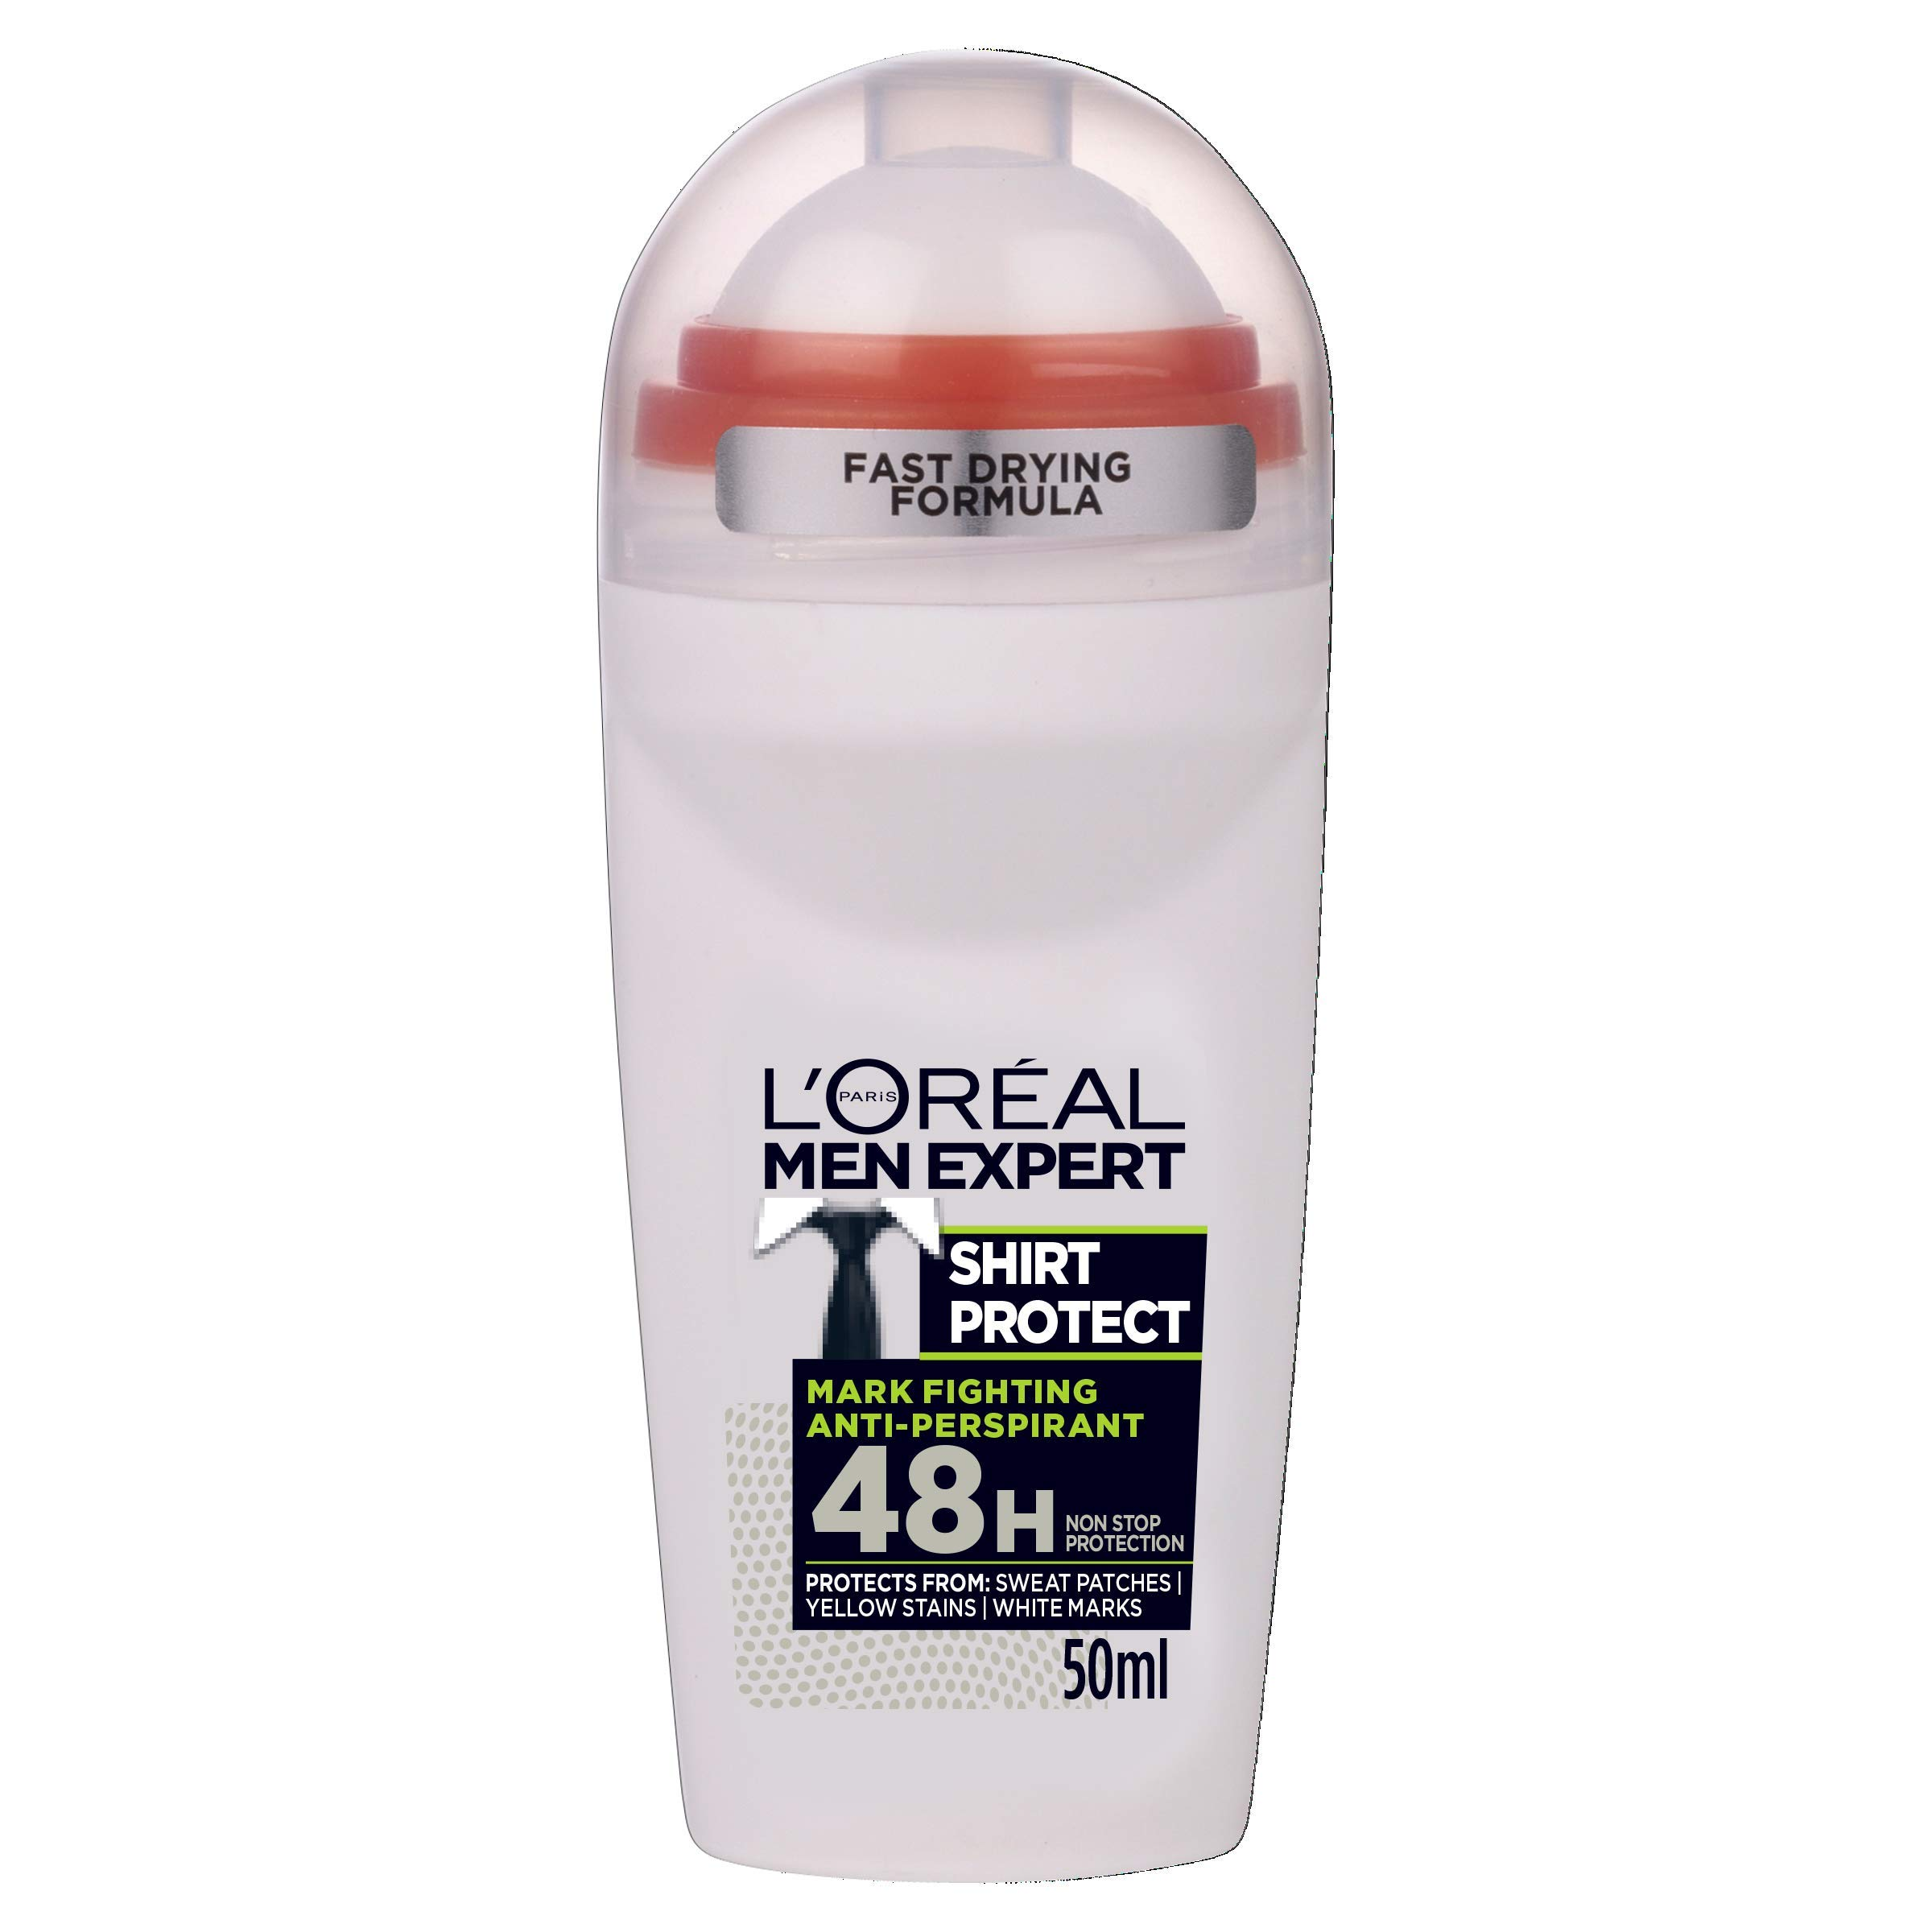 L'Oreal Paris Men Expert Shirt Protect 48H Anti-Perspirant Roll-On Deodorant 50ml